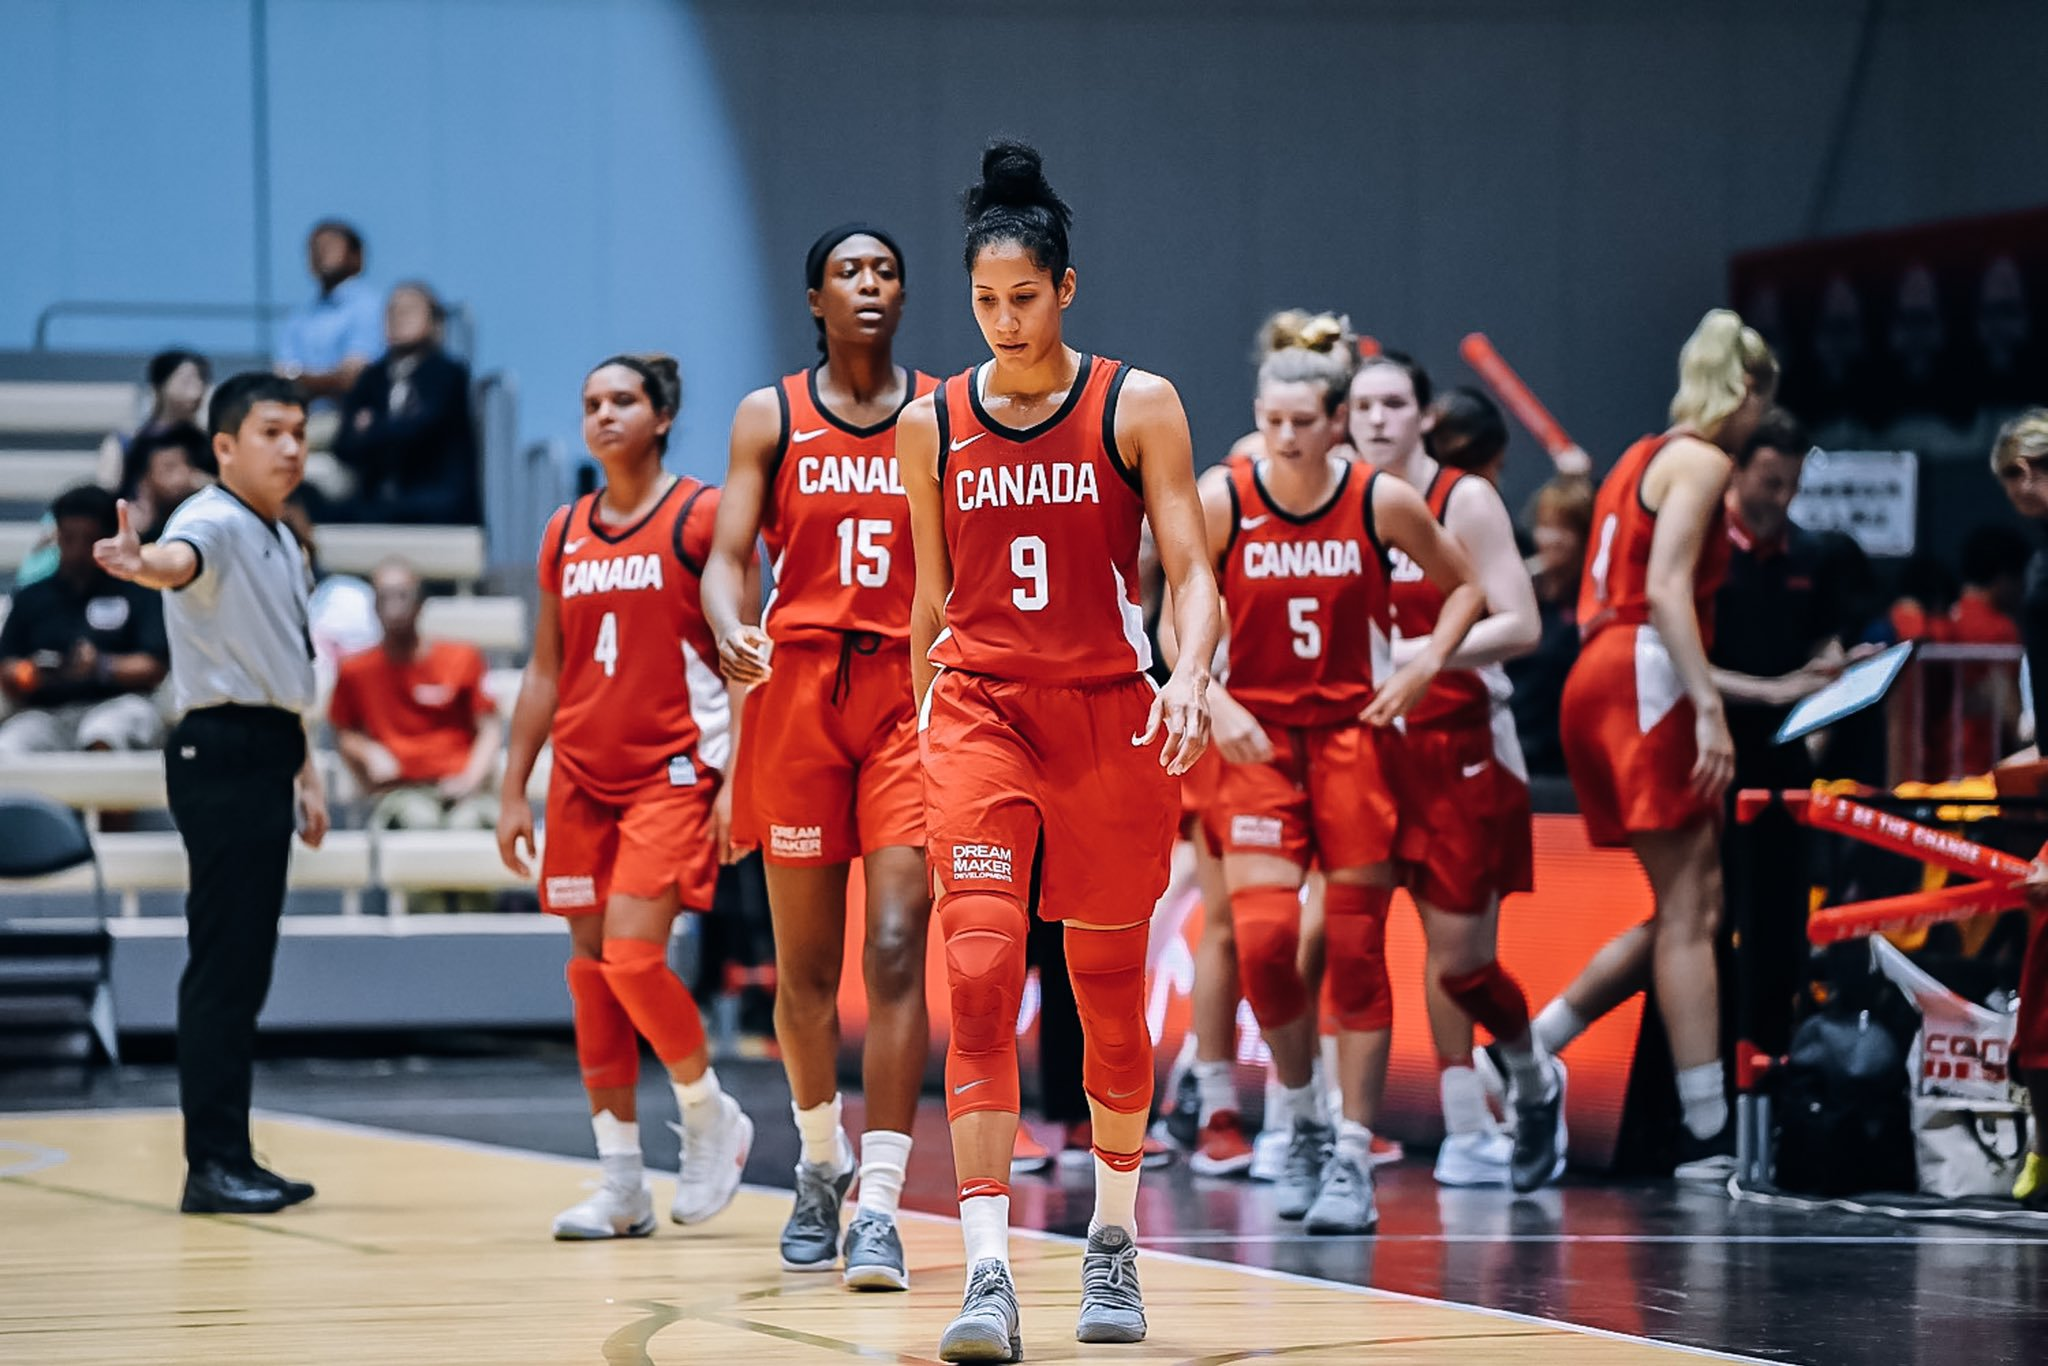 16 athletes invited to attend Senior Women's National Team training camp ahead of FIBA Women's Americup 2019